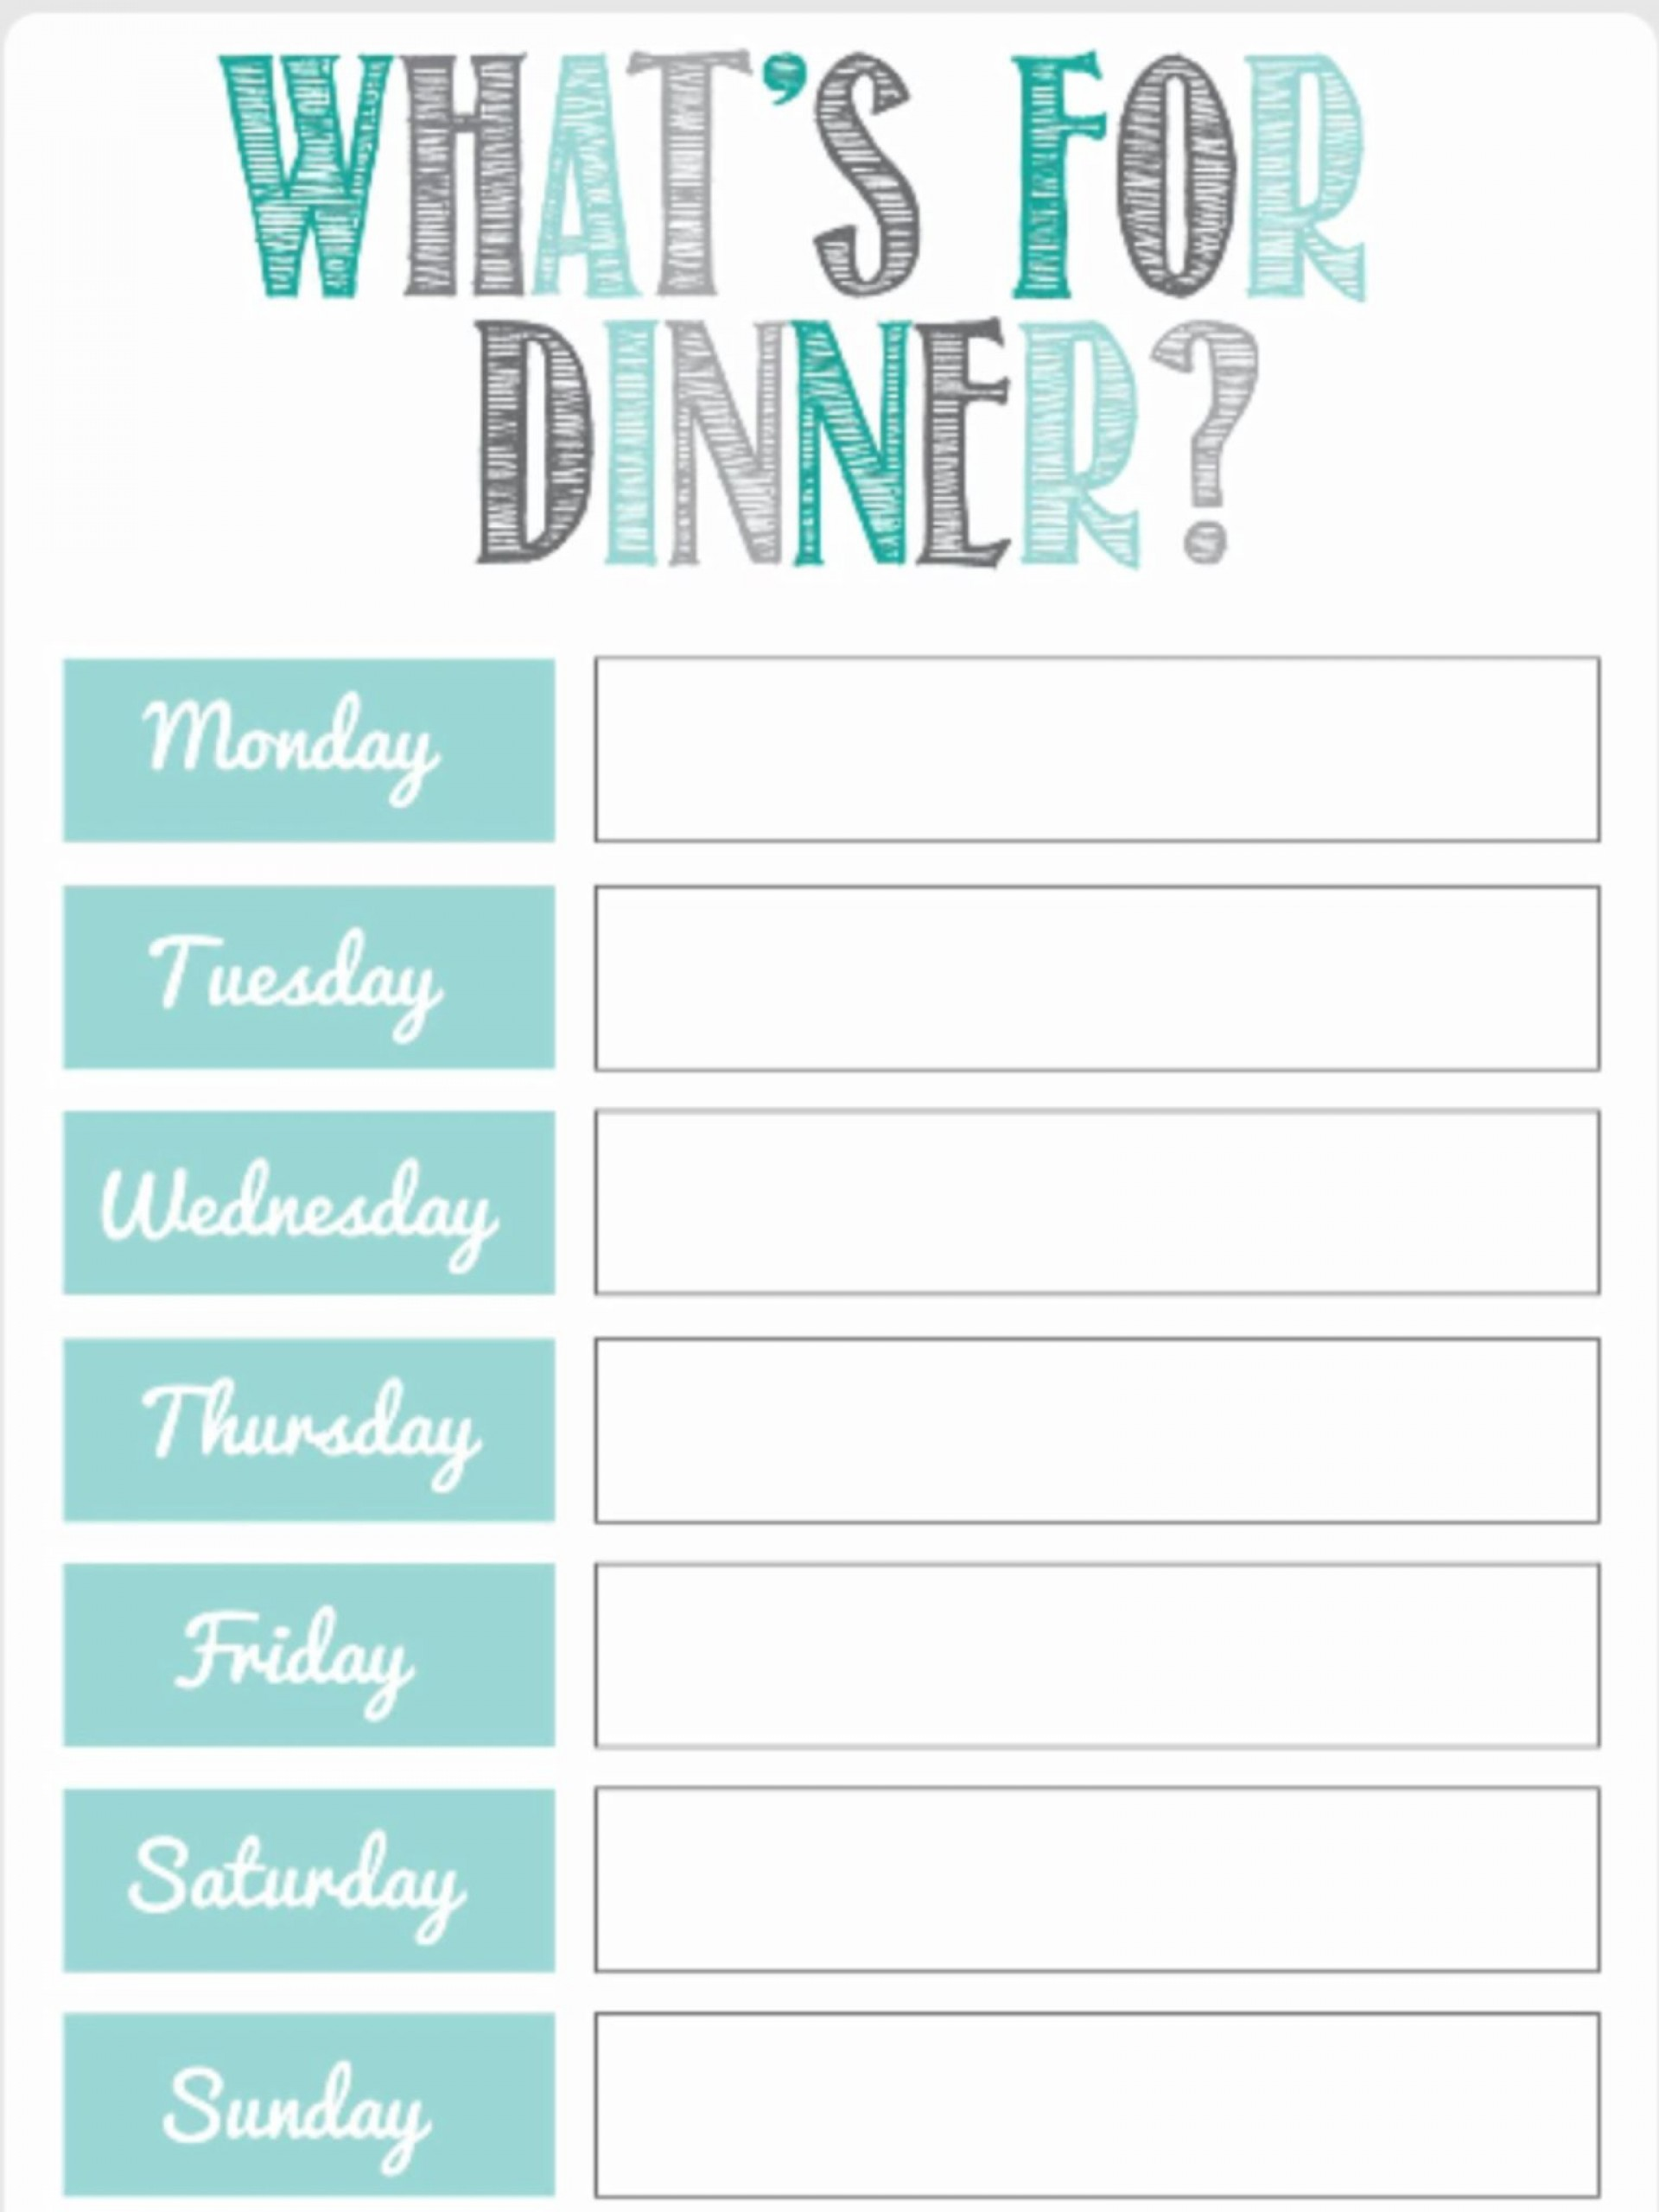 Dinner Free Meal Plan Template  Worksheet Planner For Weight Los Excel1920